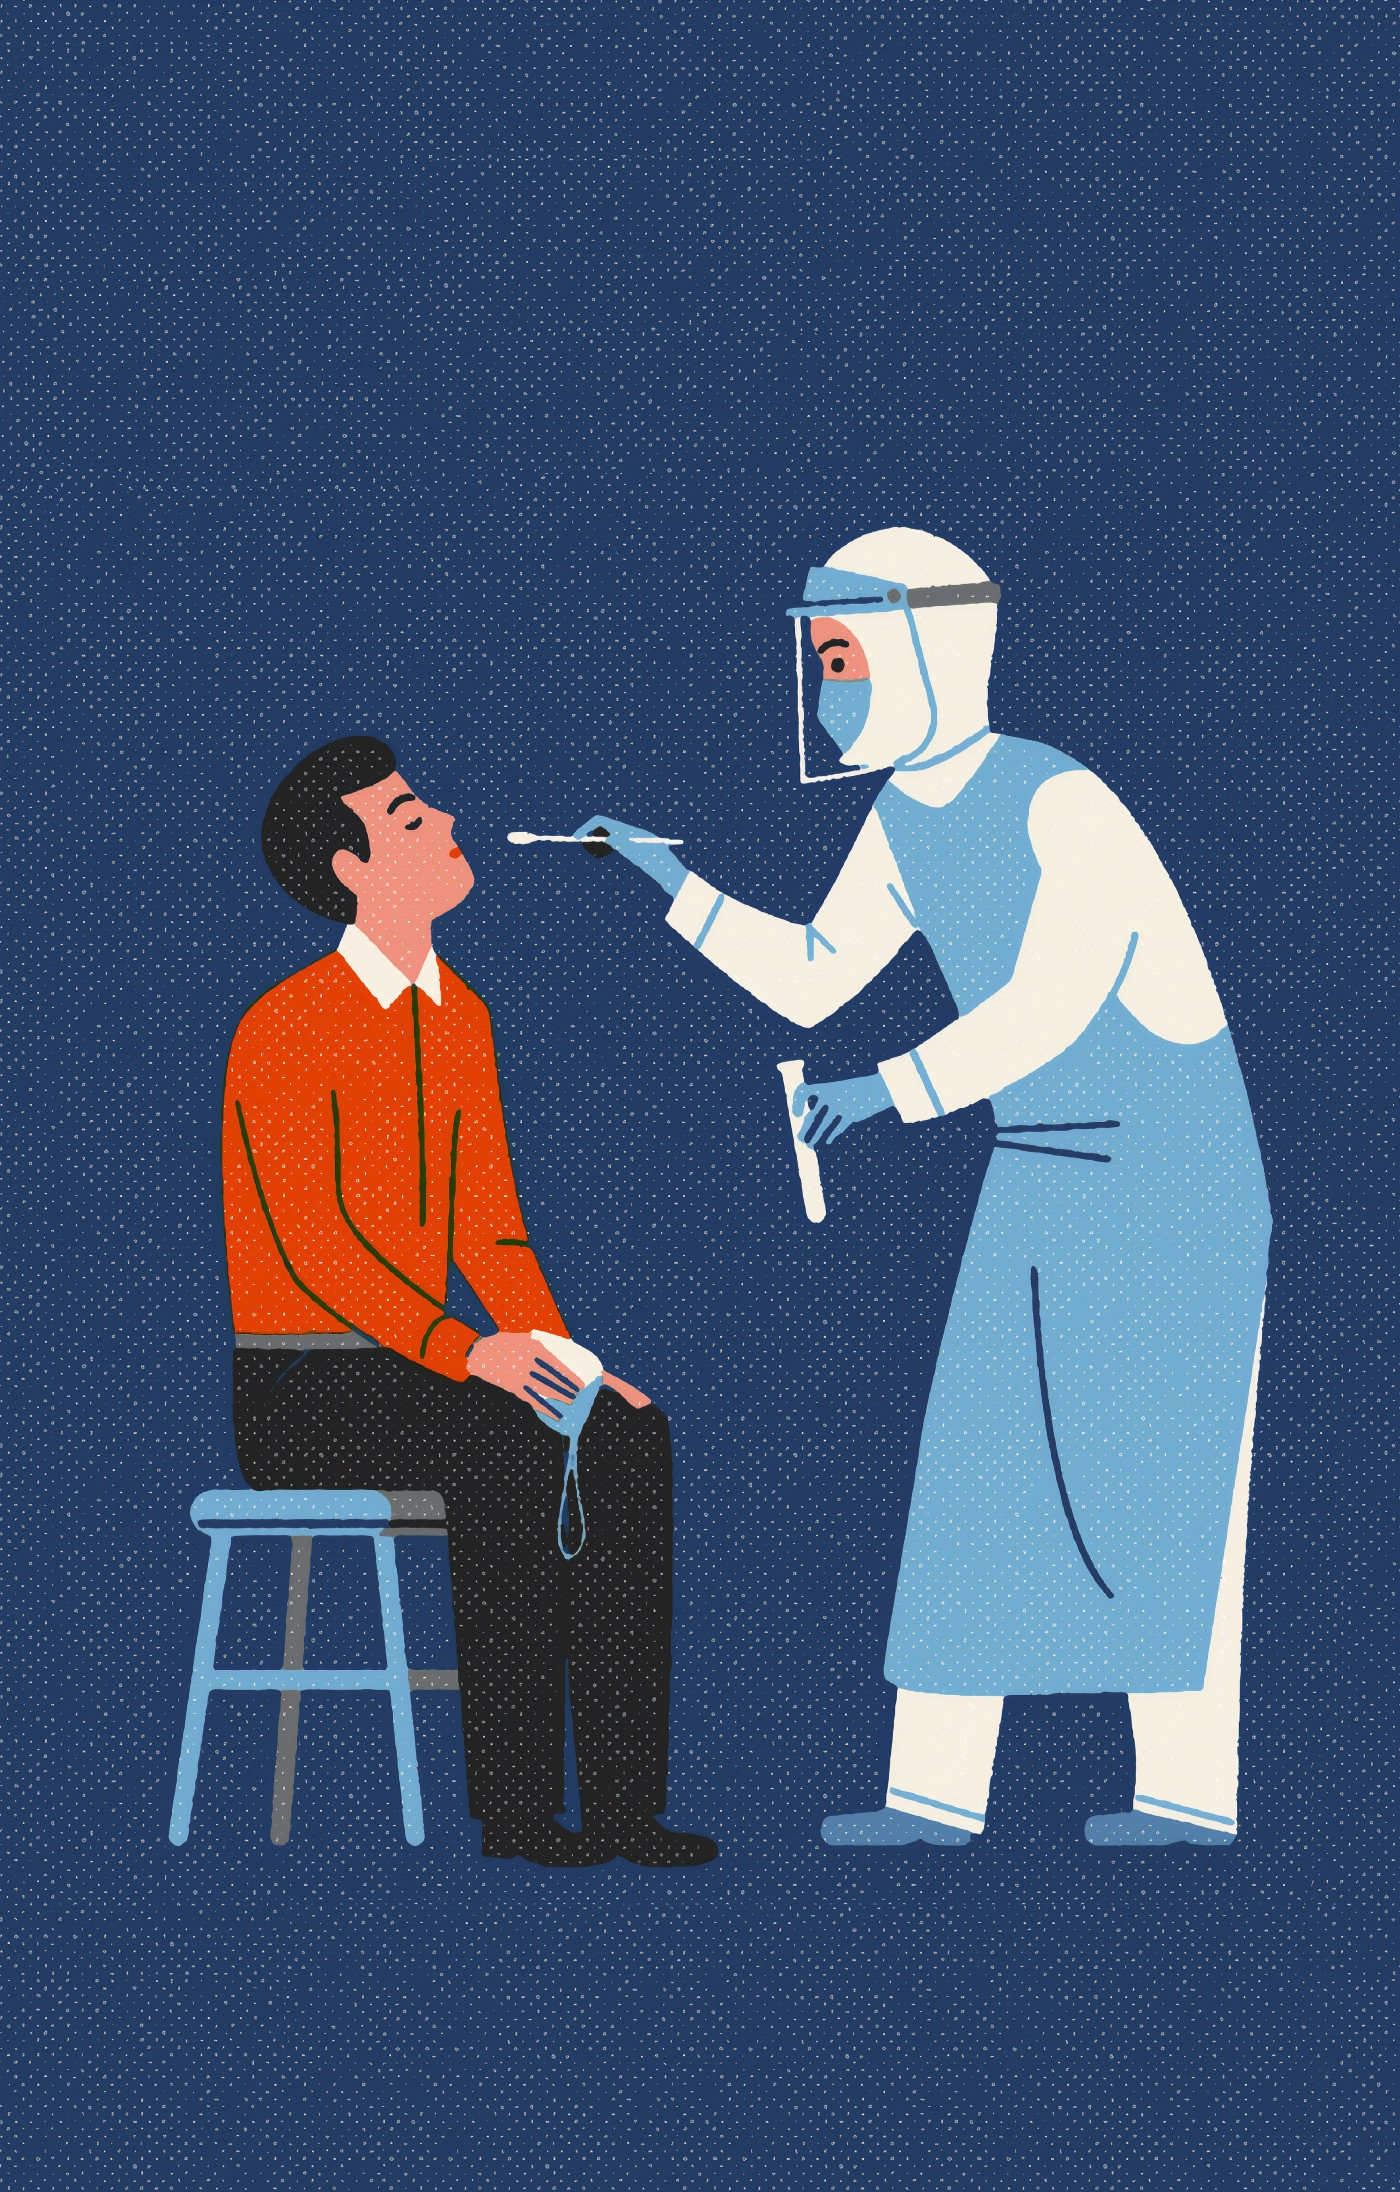 a man sitting on a stool in front of a healthcare worker wearing full PPE. They are preparing to swab the man's nose.